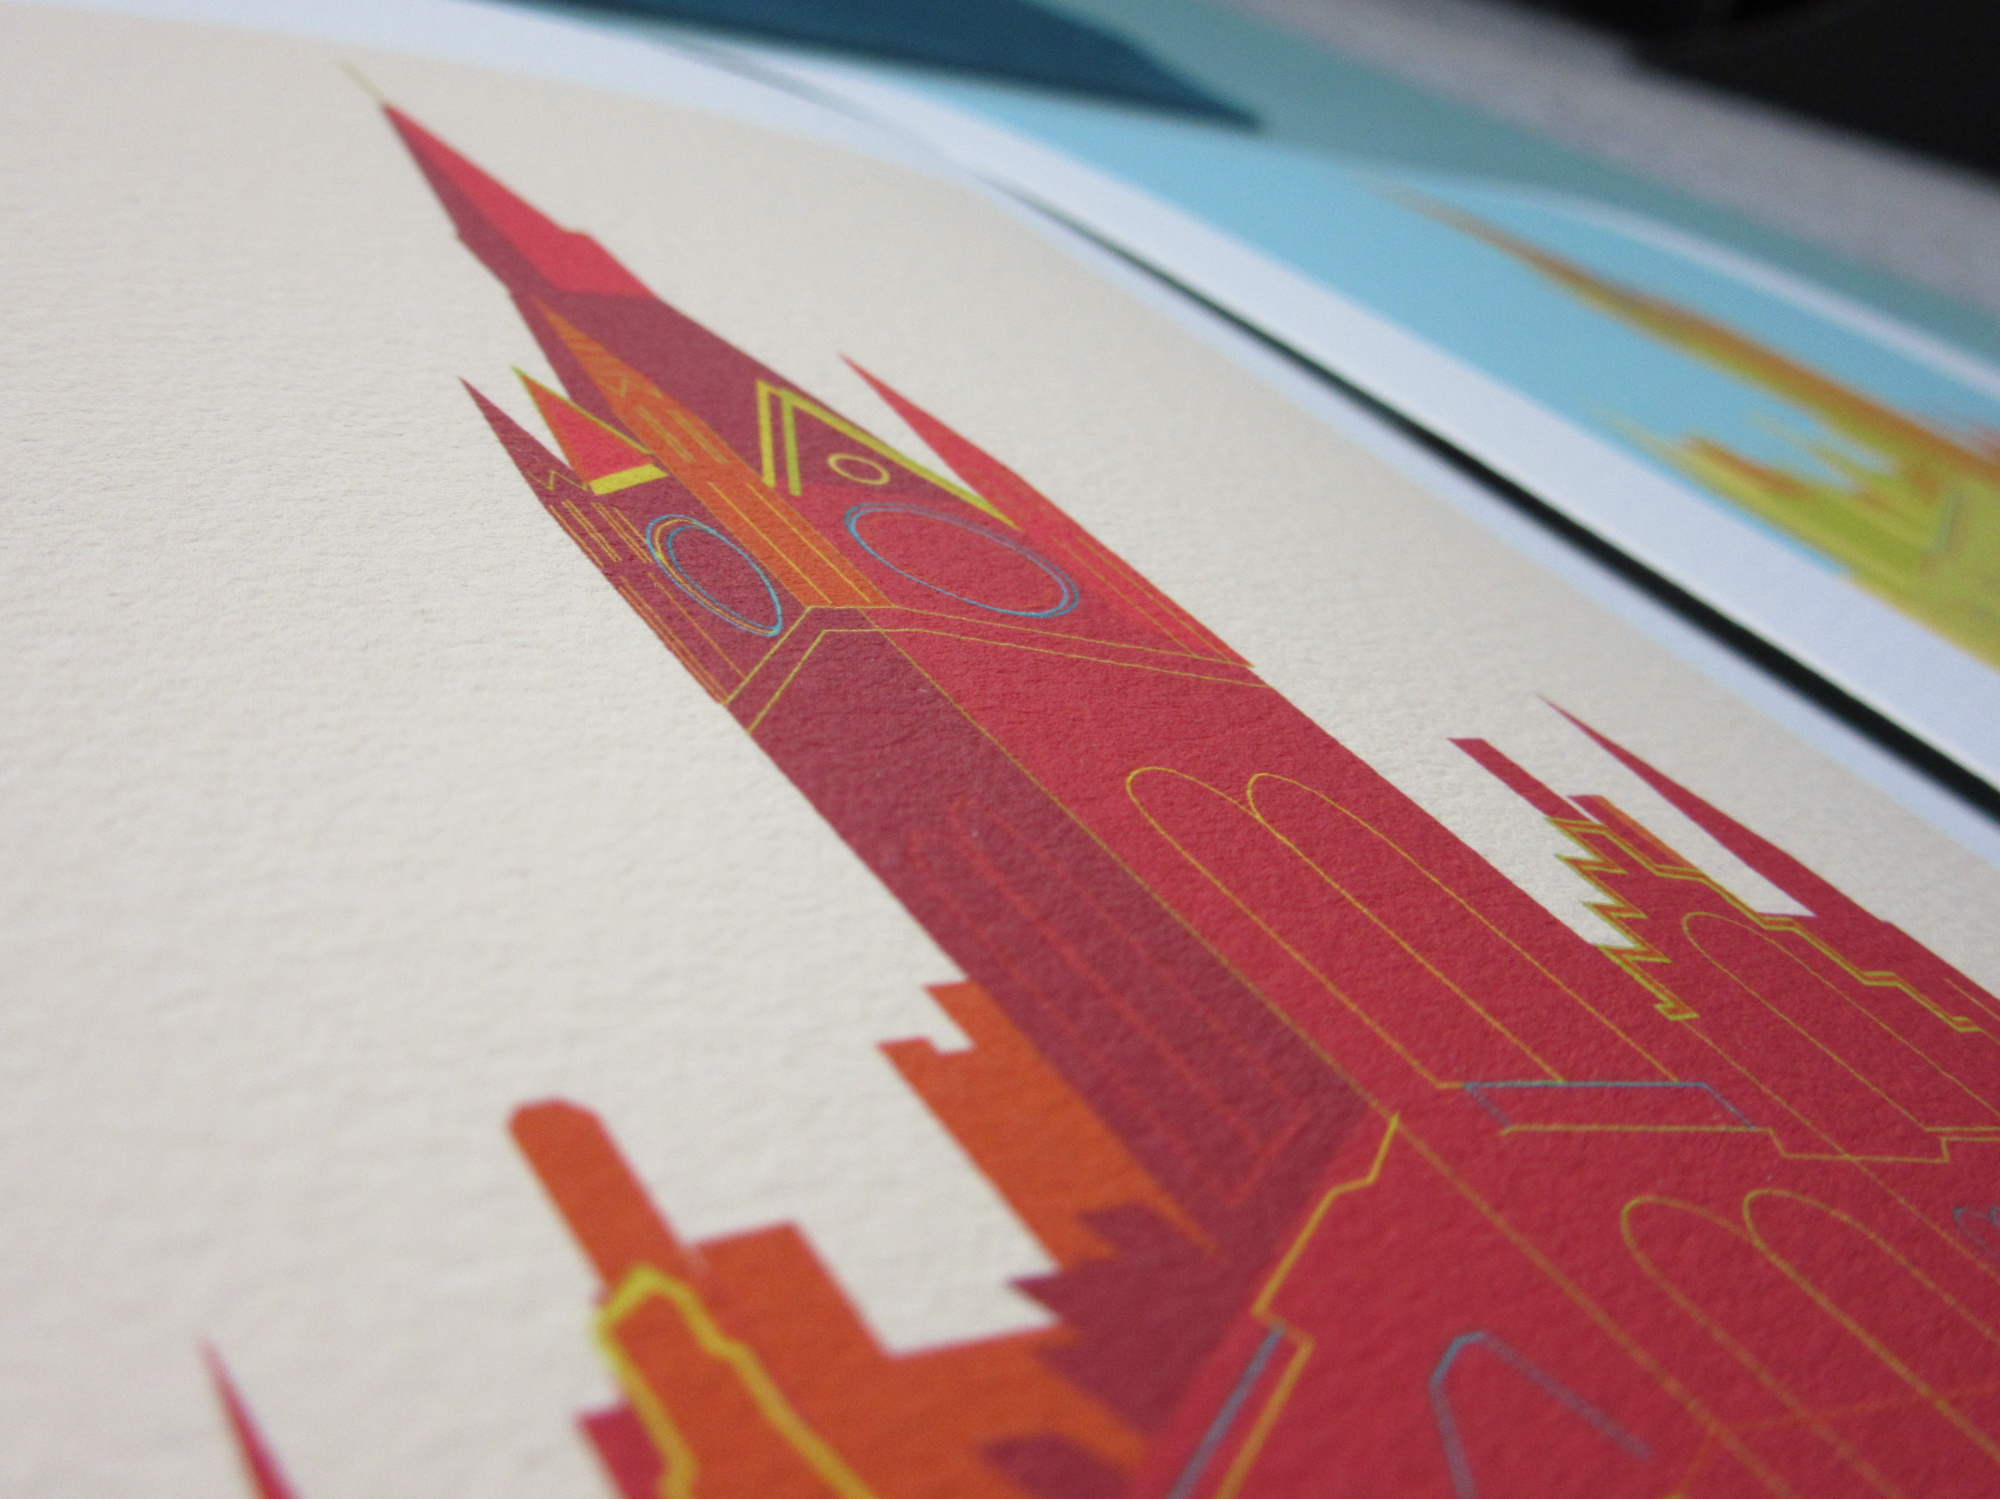 Colour options were provided for the customised St Pancras print